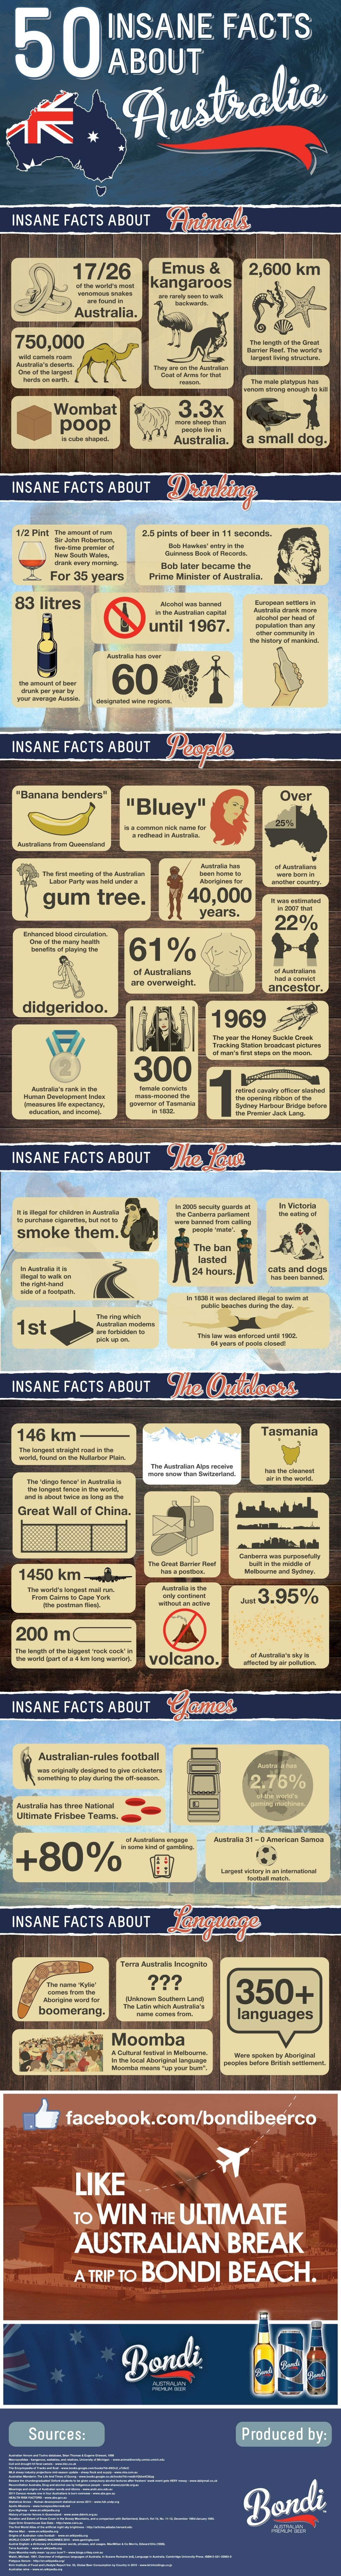 50-insane-facts-about-Australia_140814